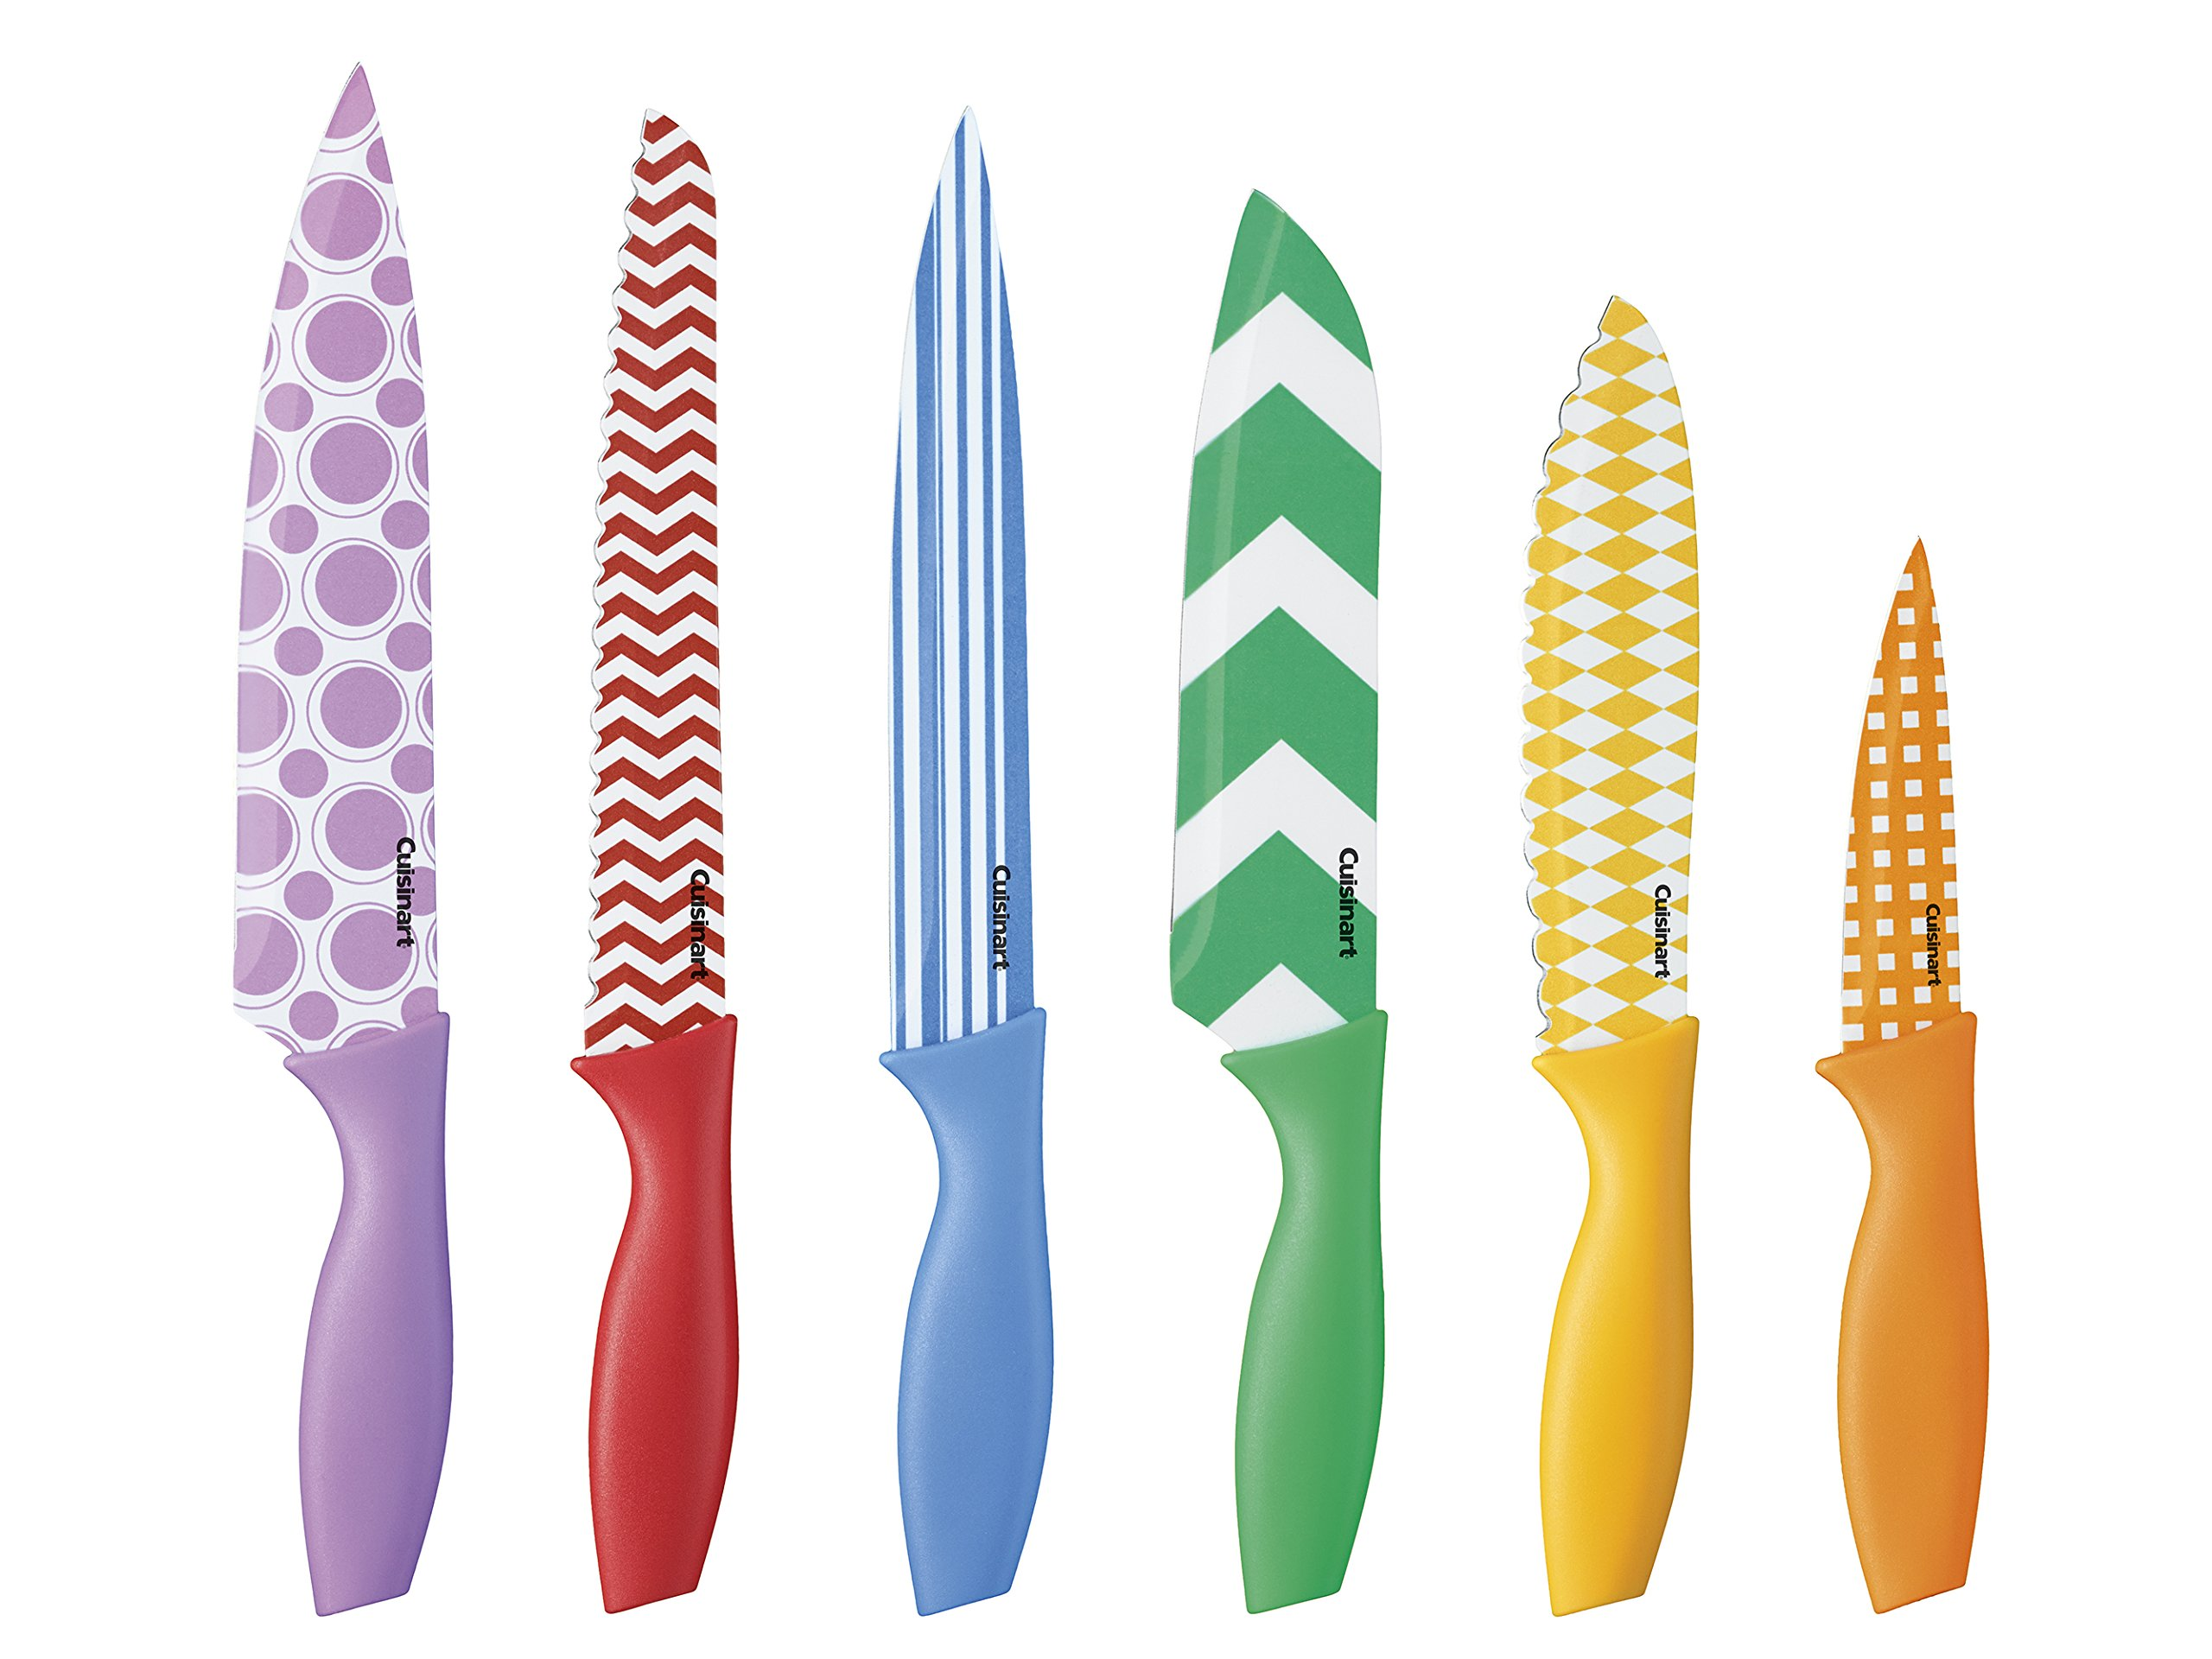 Cuisinart C55-12PR1 12-Piece Printed Color Knife Set with Blade Guards, Multicolored by Cuisinart